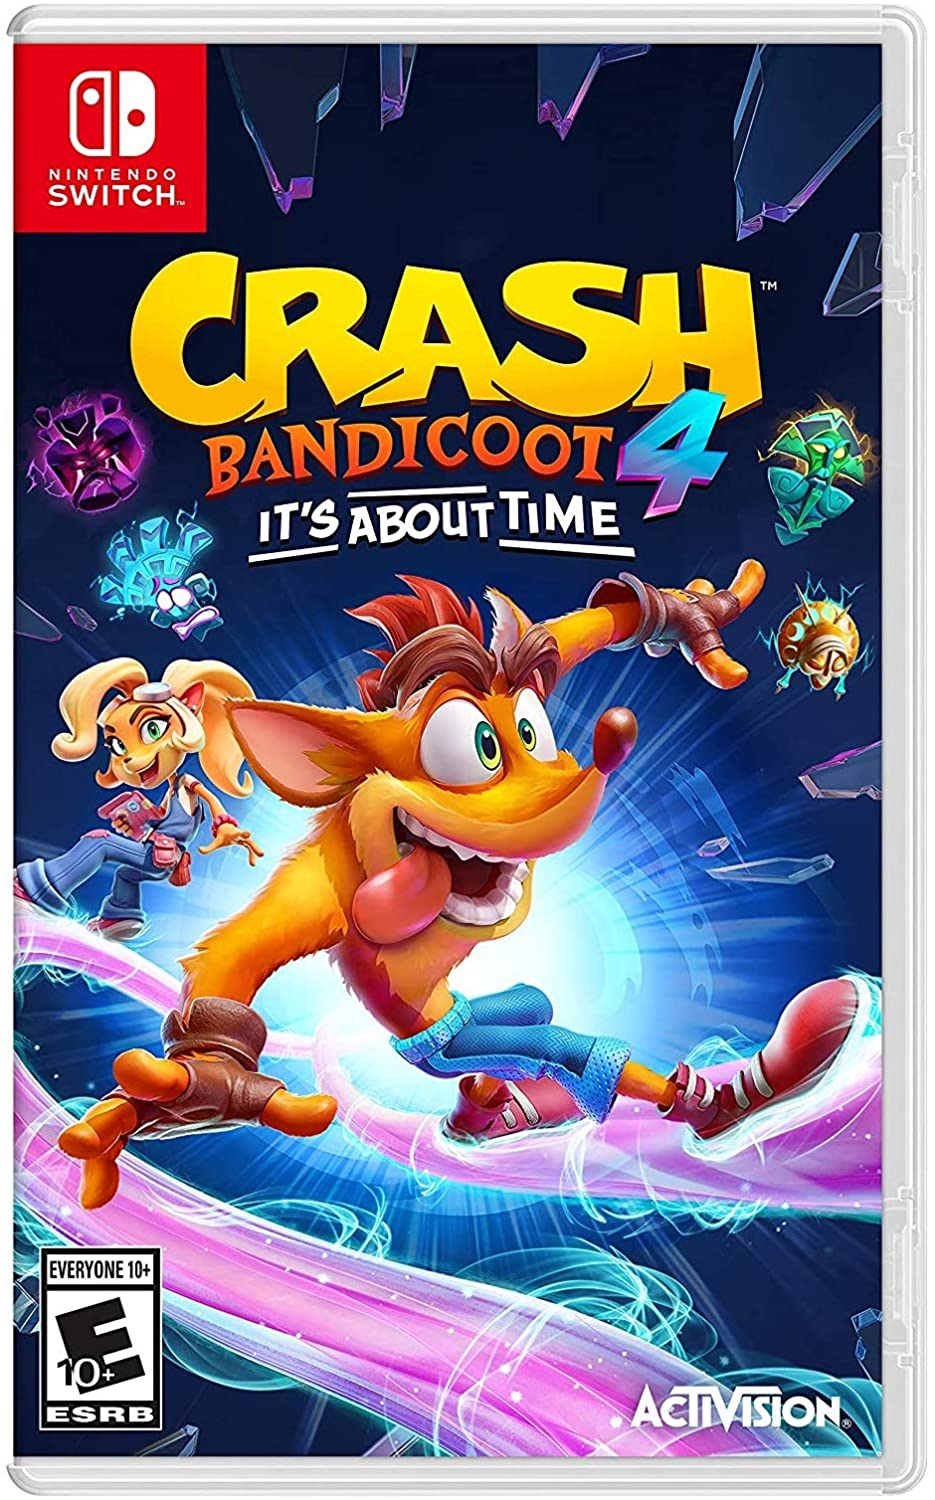 NINTENDO Juego Switch Crash Bandicoot 4: It's About Time